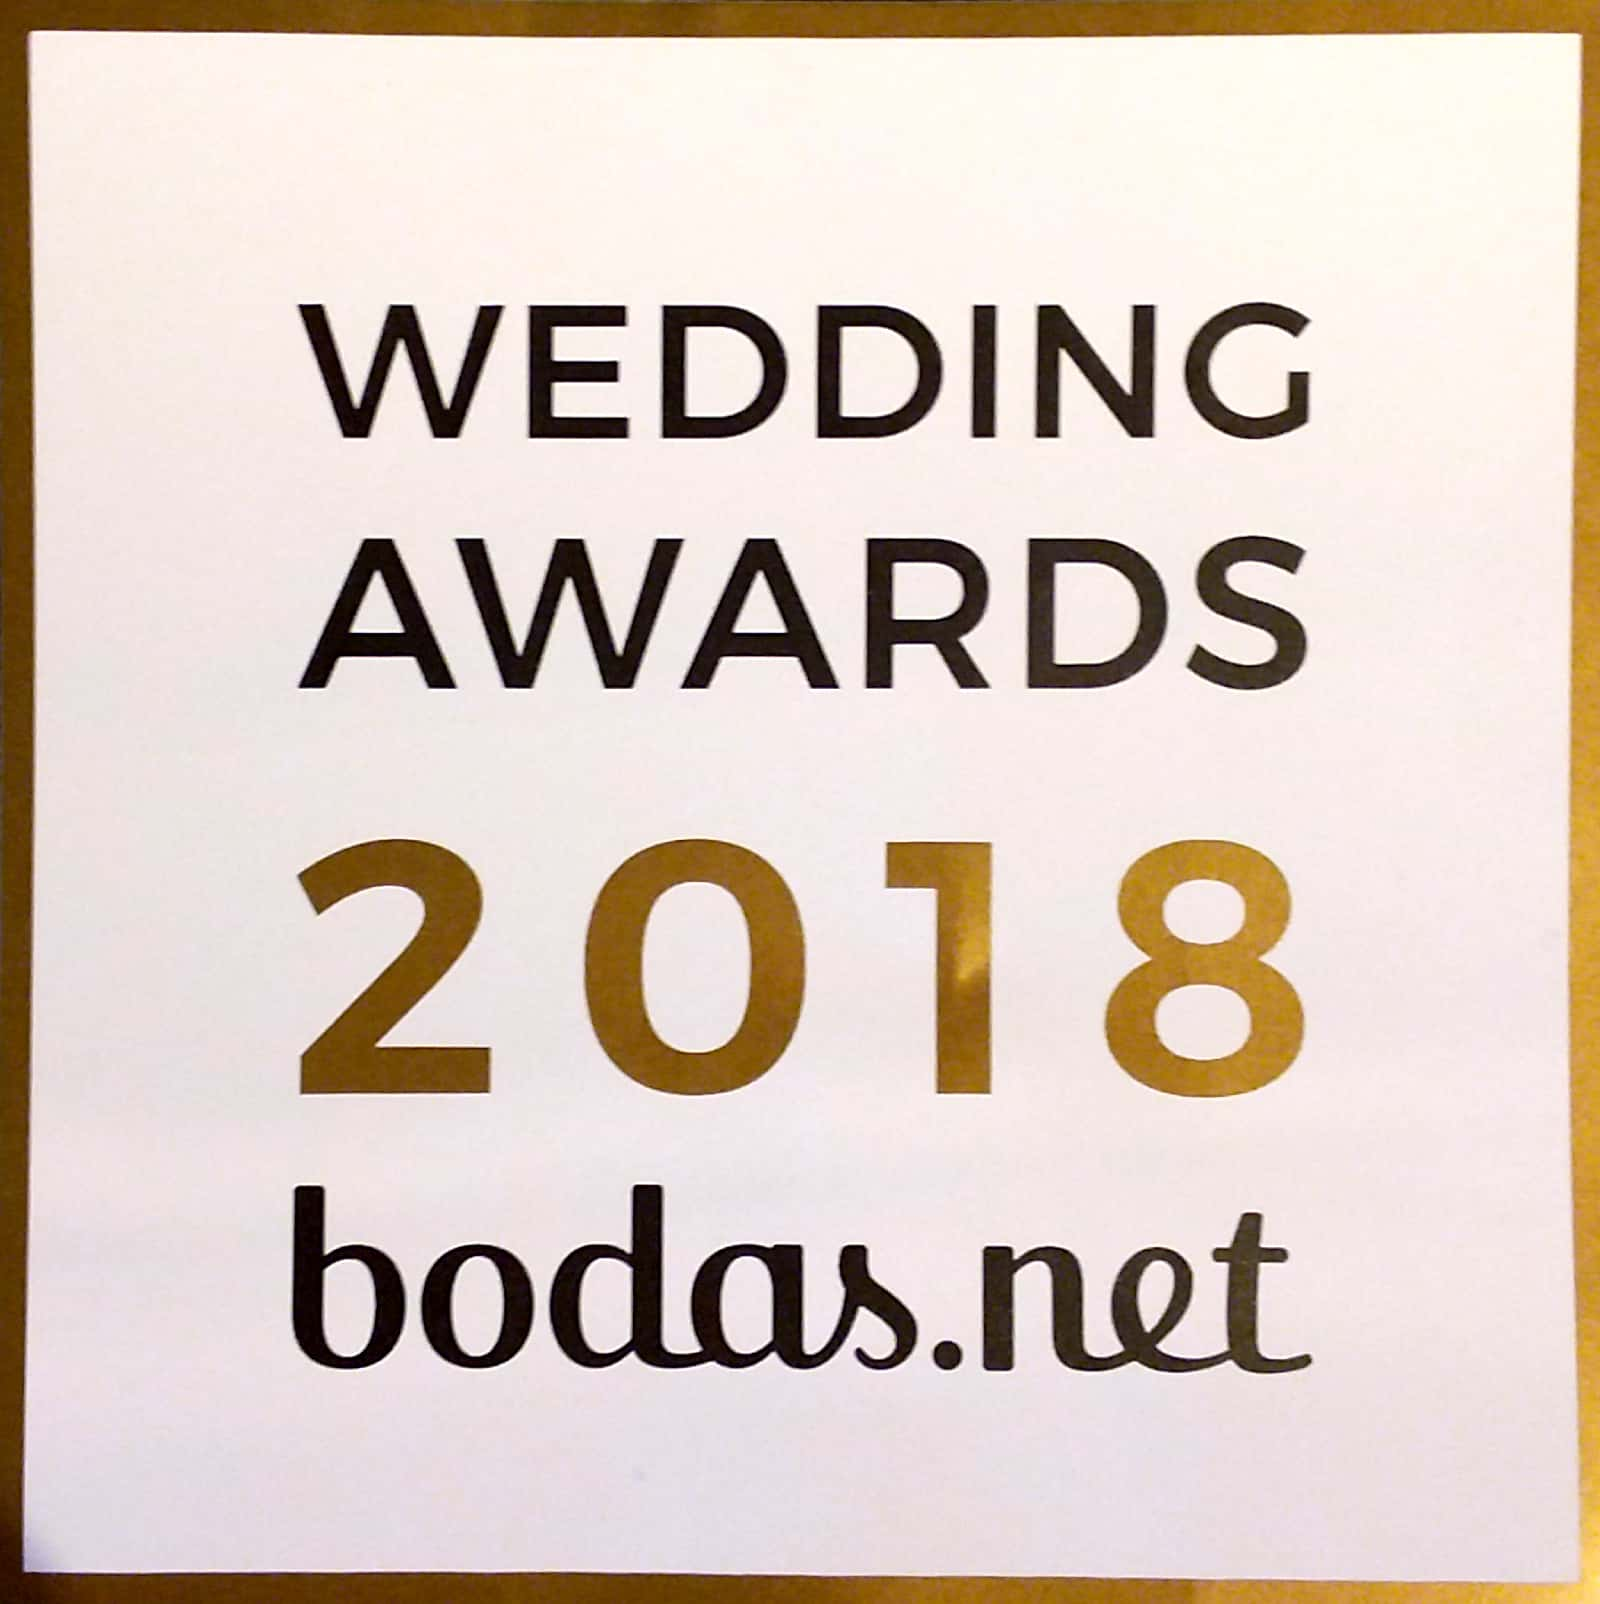 premio-wedding-awards-de-bodas.net_